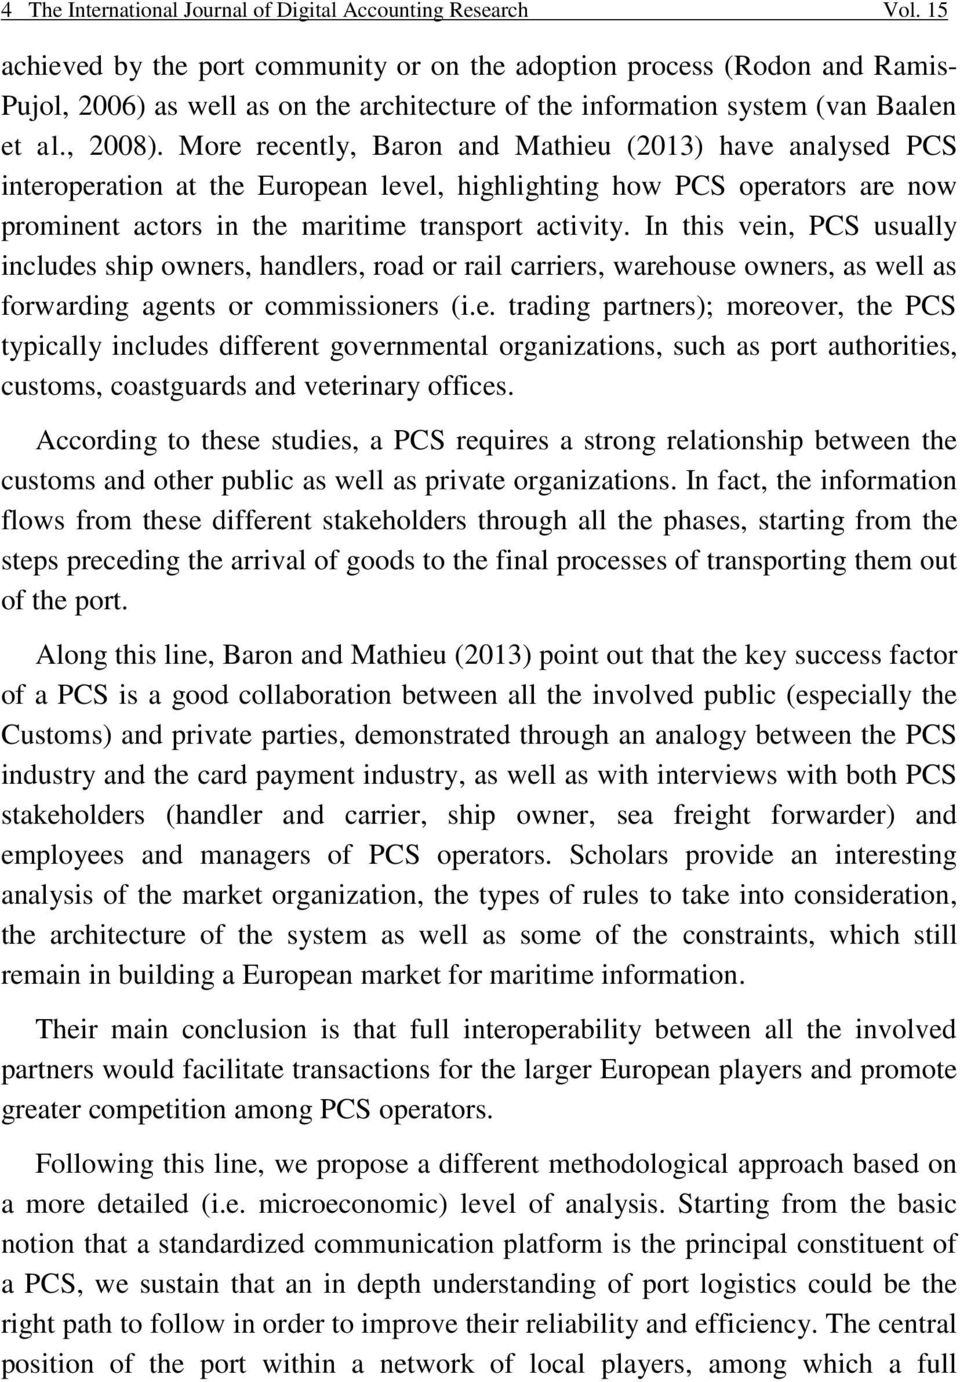 More recently, Baron and Mathieu (2013) have analysed PCS interoperation at the European level, highlighting how PCS operators are now prominent actors in the maritime transport activity.